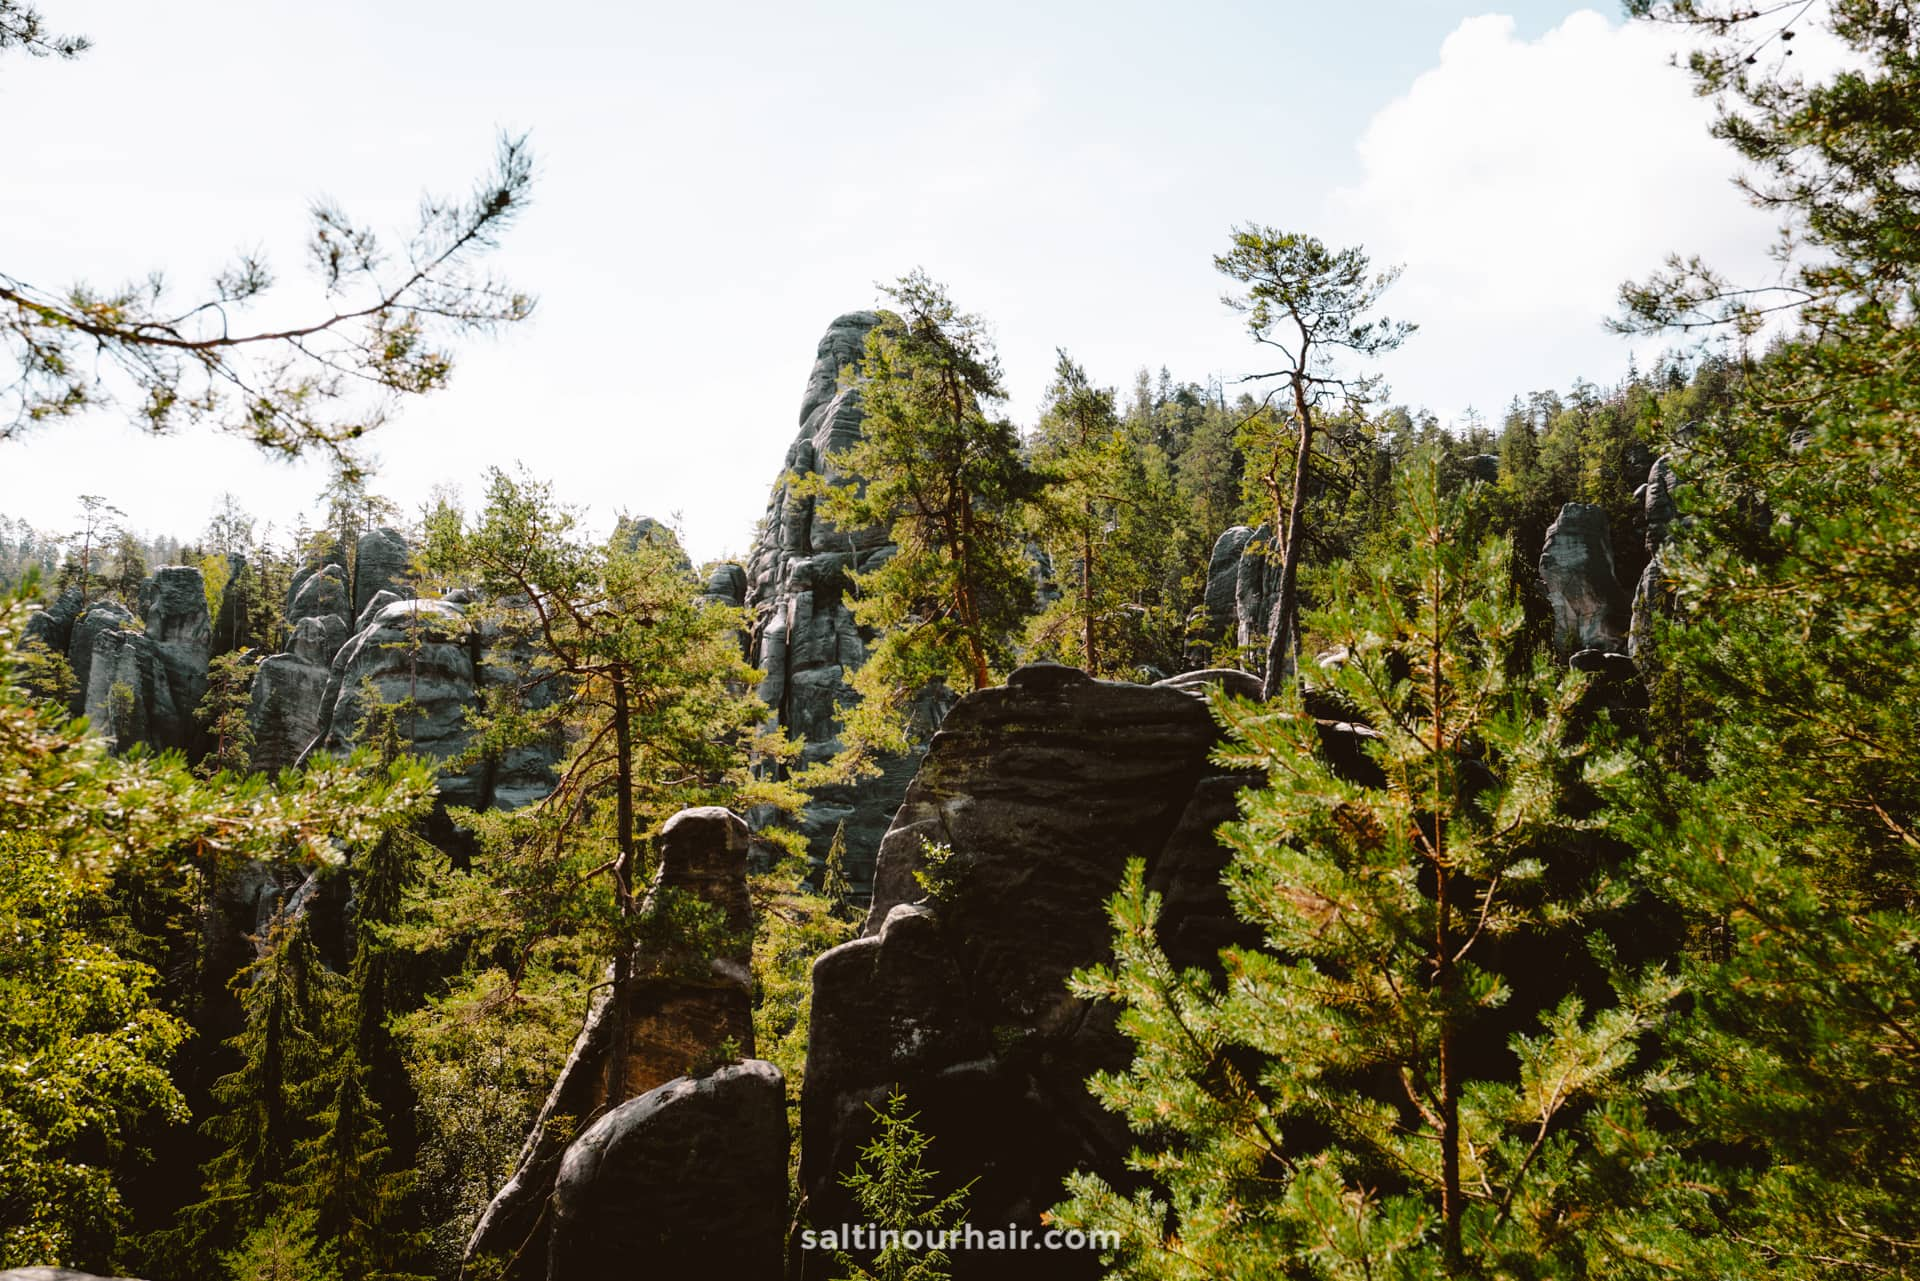 view hike Adrspach Teplice Rocks national park Czech Republic